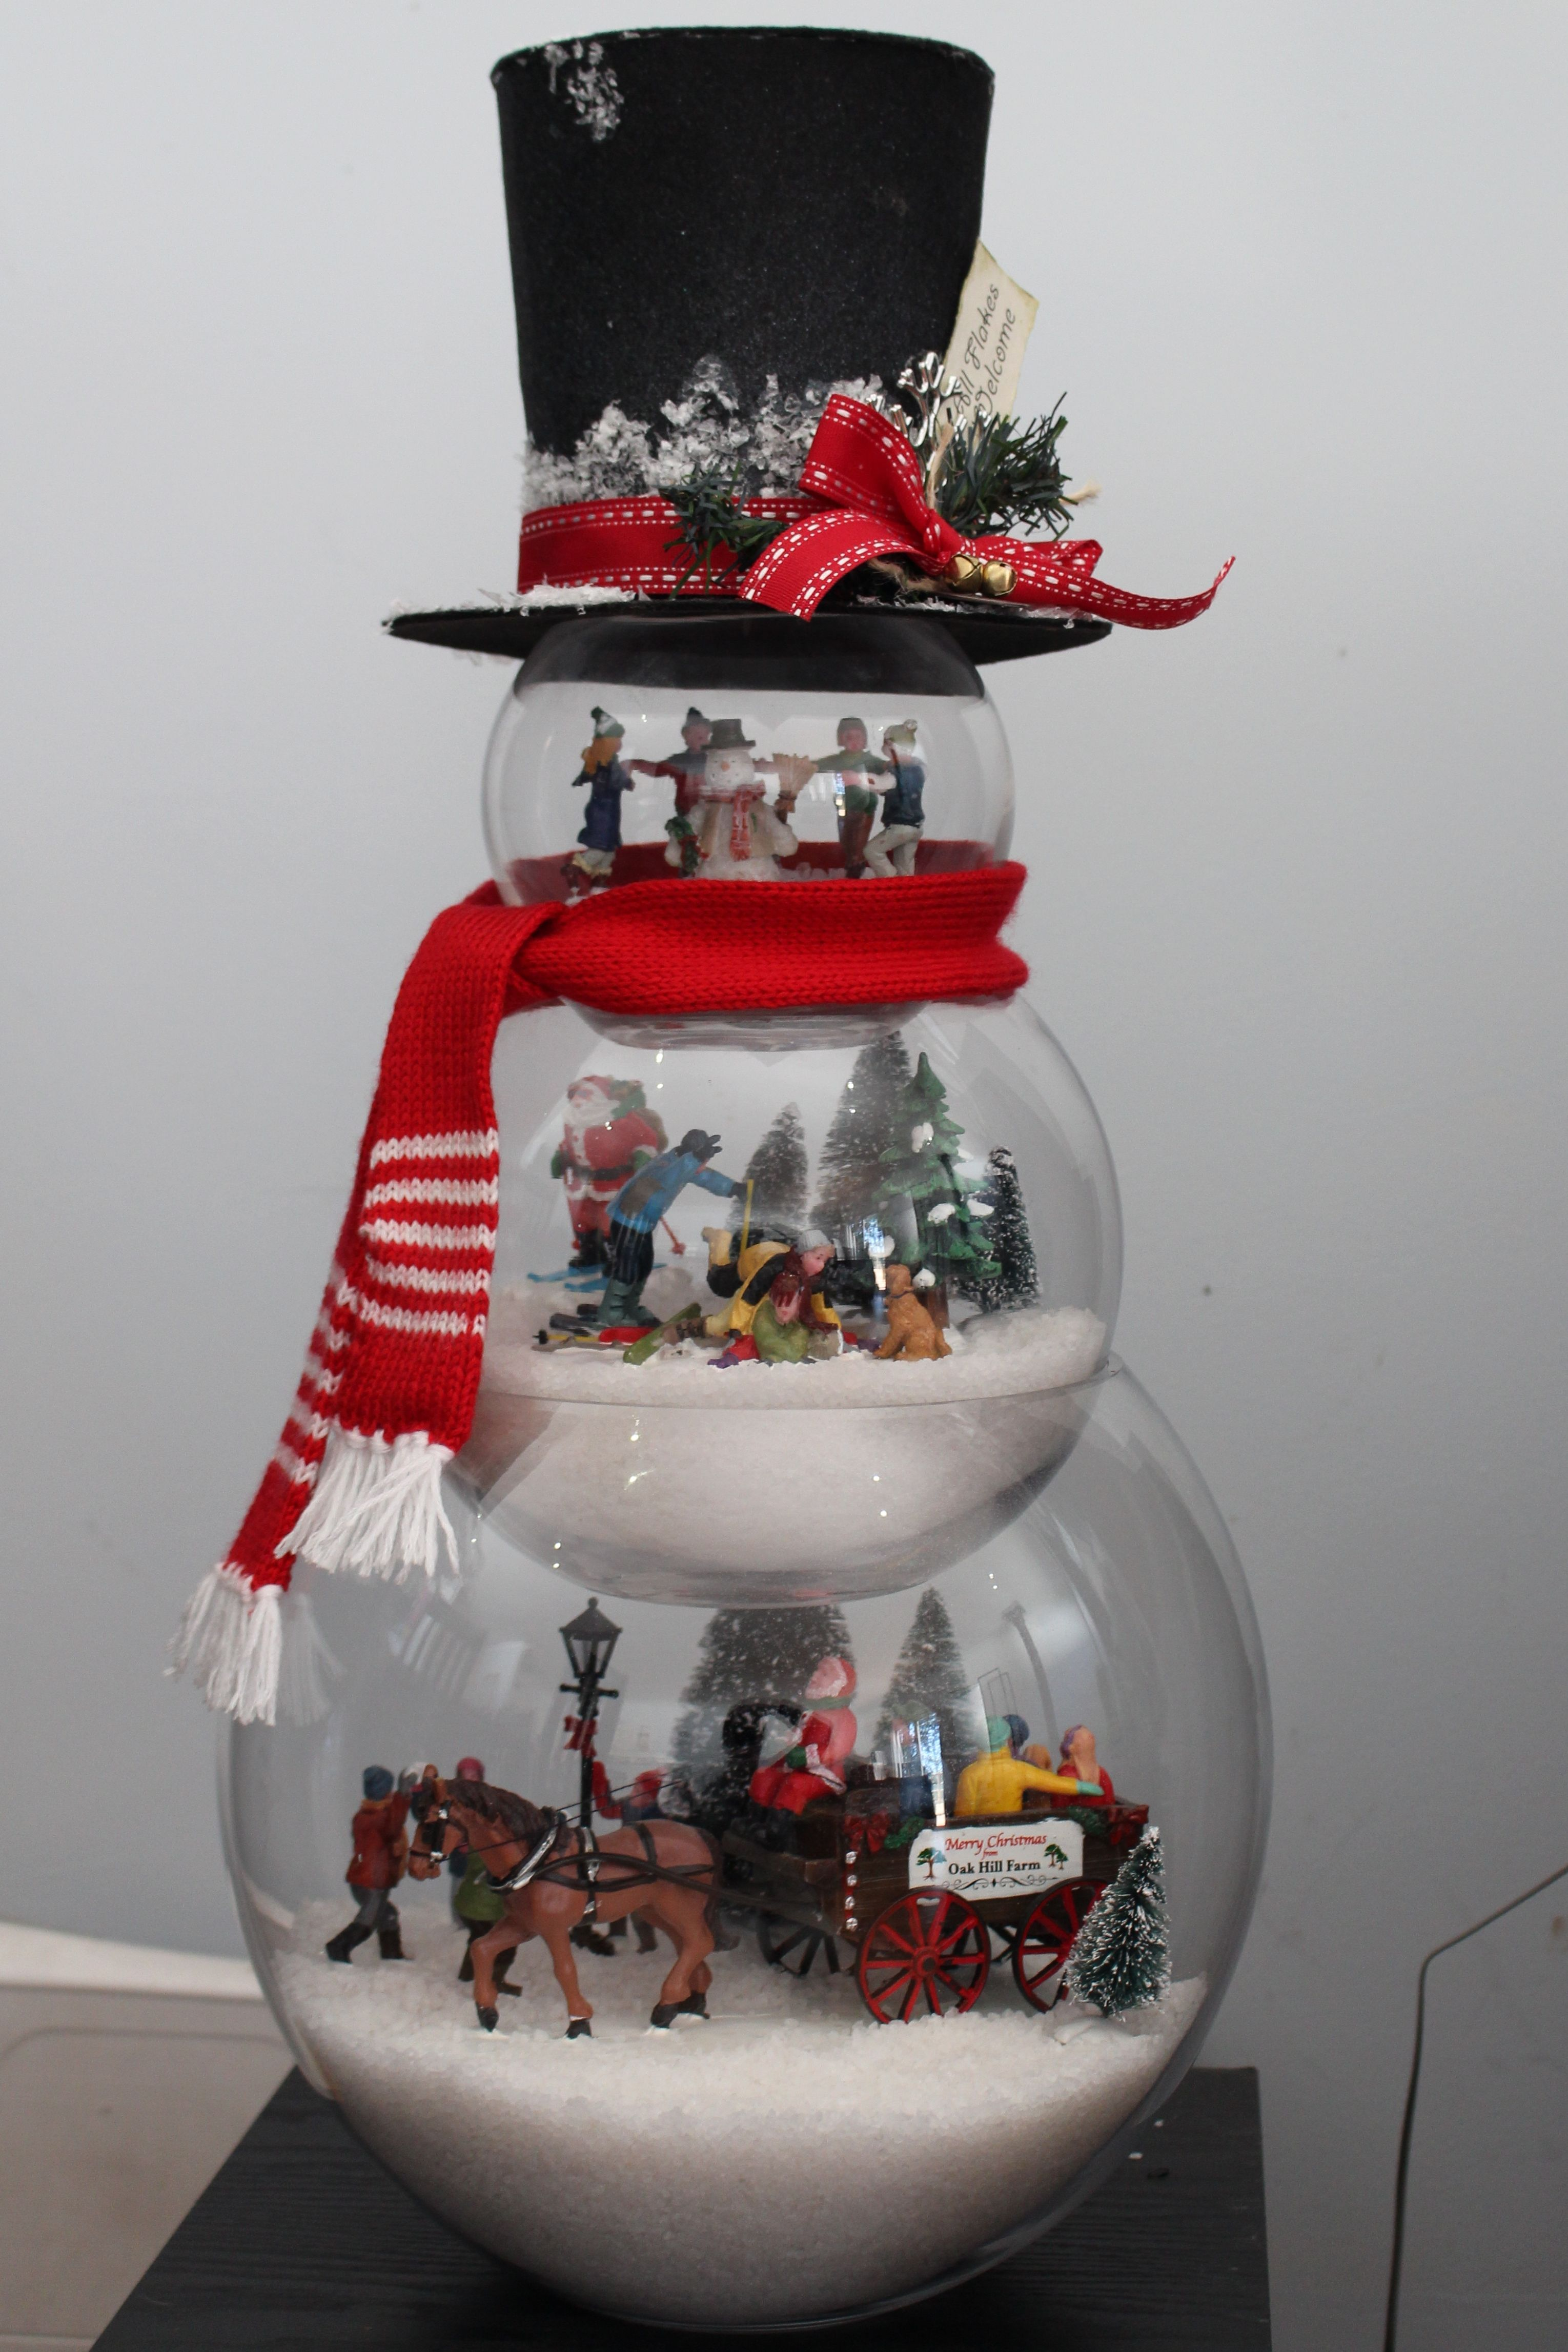 Loving My Latest Christmas Craft Gl Fishbowl Snowman With Frosty Hat Filled Lemax Figurines Fish Bowl Tree Snow